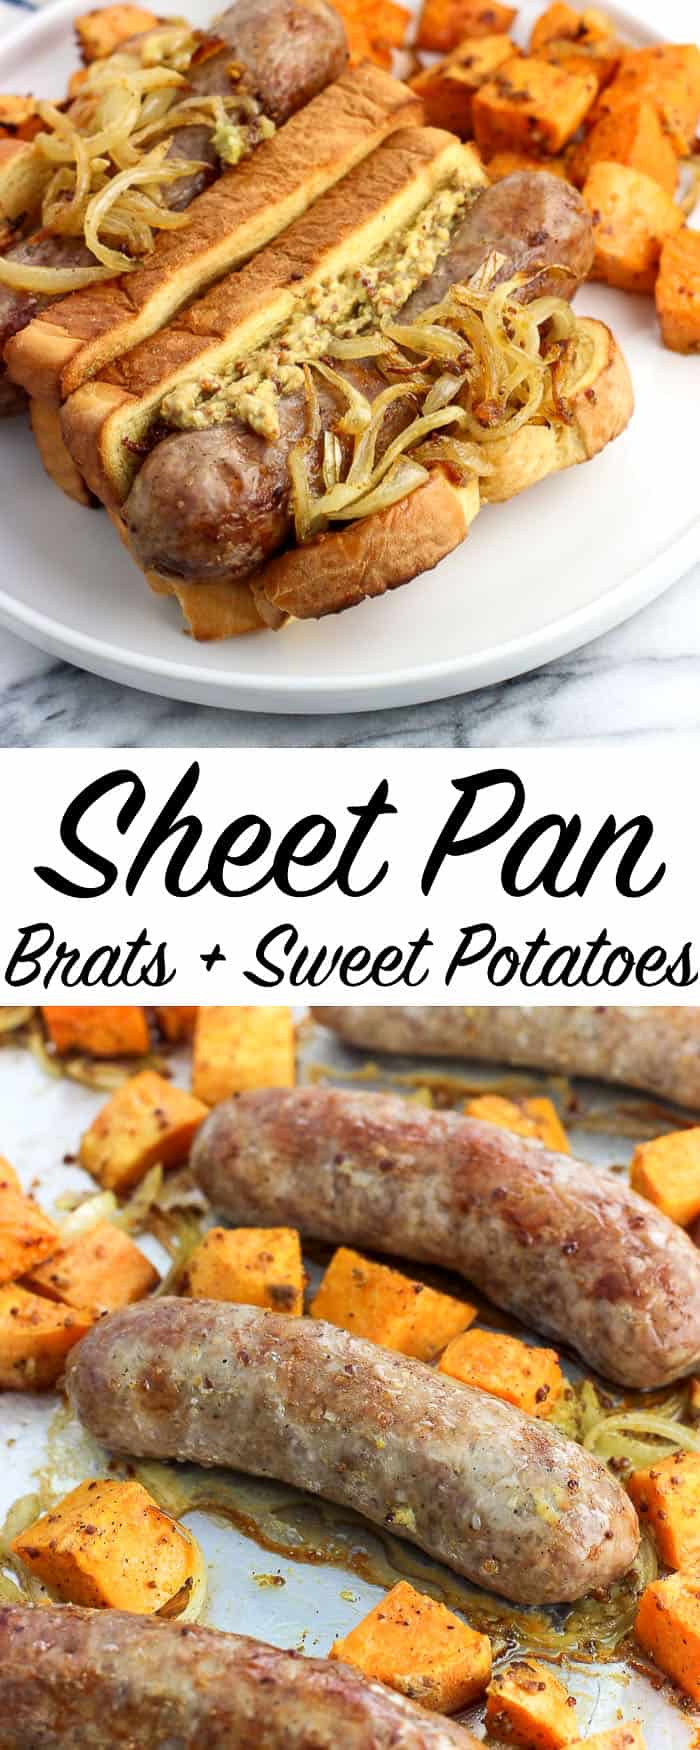 Sheet pan bratwurst and sweet potatoes is an easy dinner recipe where the meat, toppings, and side dish cook all on one pan. The bratwurst brown and 'crisp' up while the sliced onion softens beautifully. Stone ground mustard and warm spices flavor the roasted sweet potatoes for a complementary and delicious side dish.